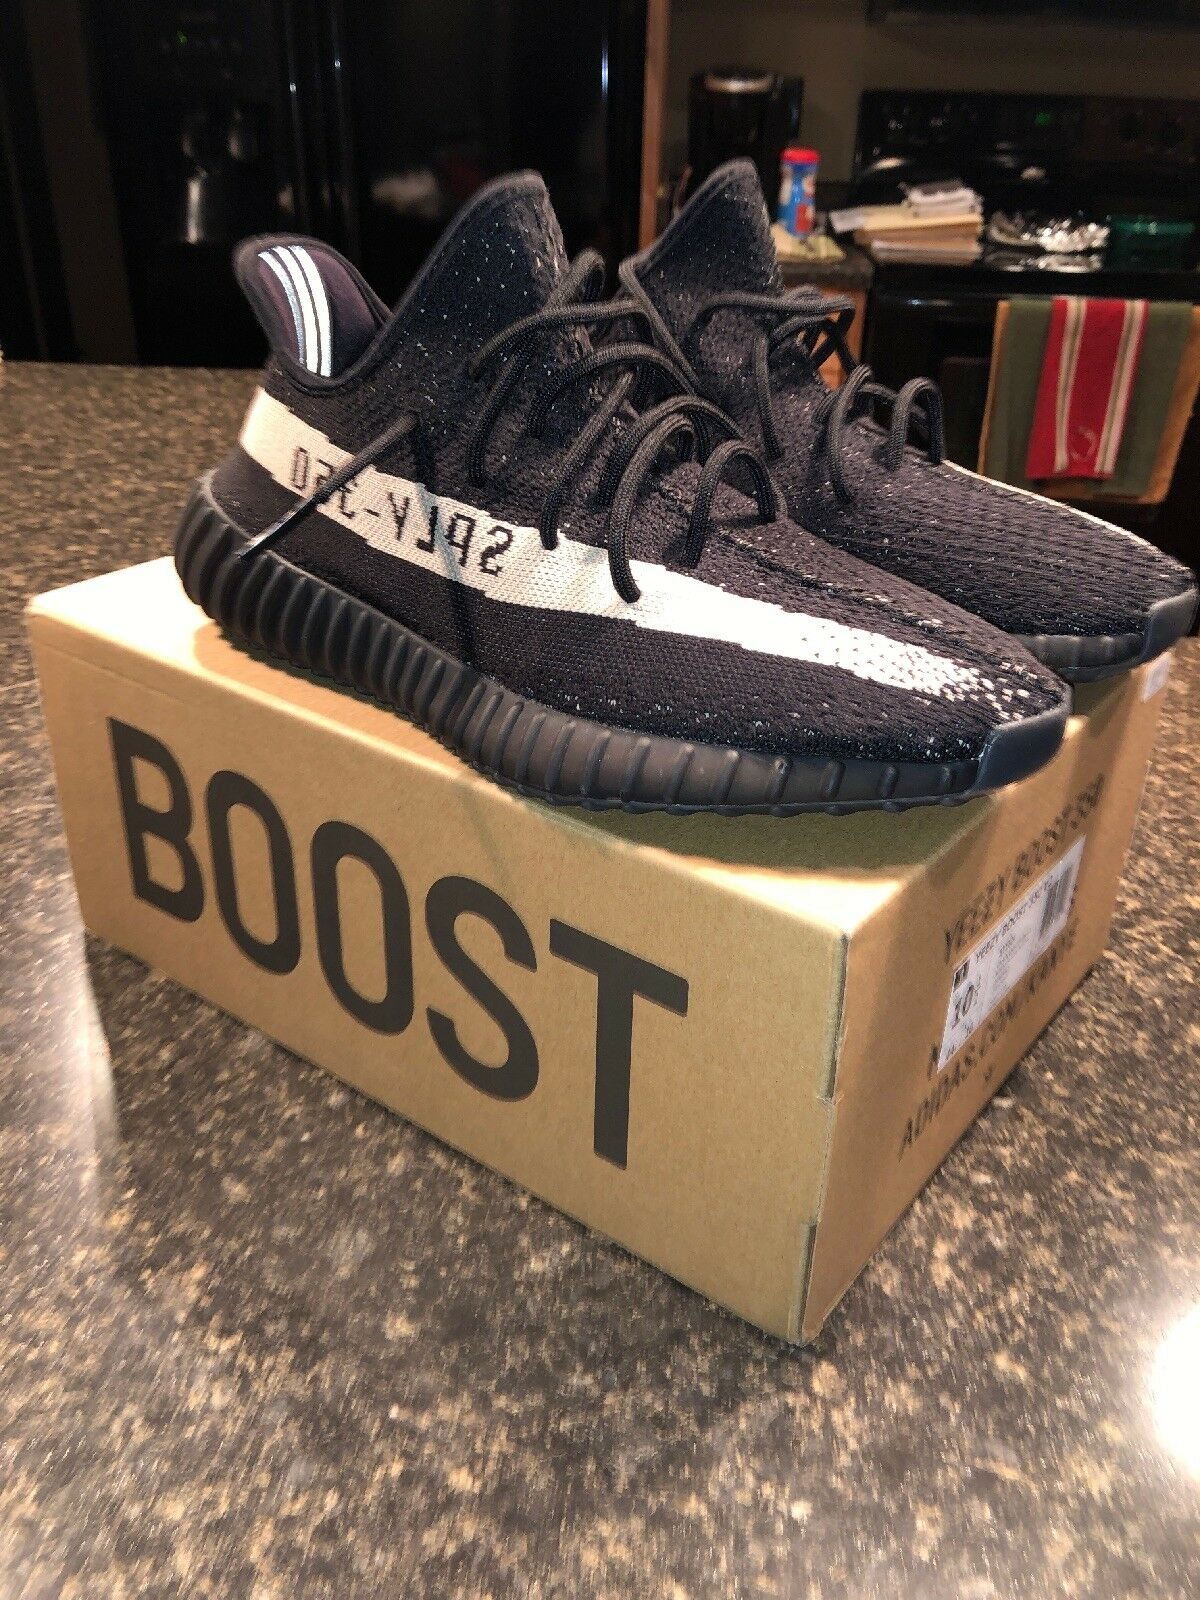 Adidas Yeezy Boost 350 V2 Oreo, Size 10 1 2, Worn ONCE Practially New